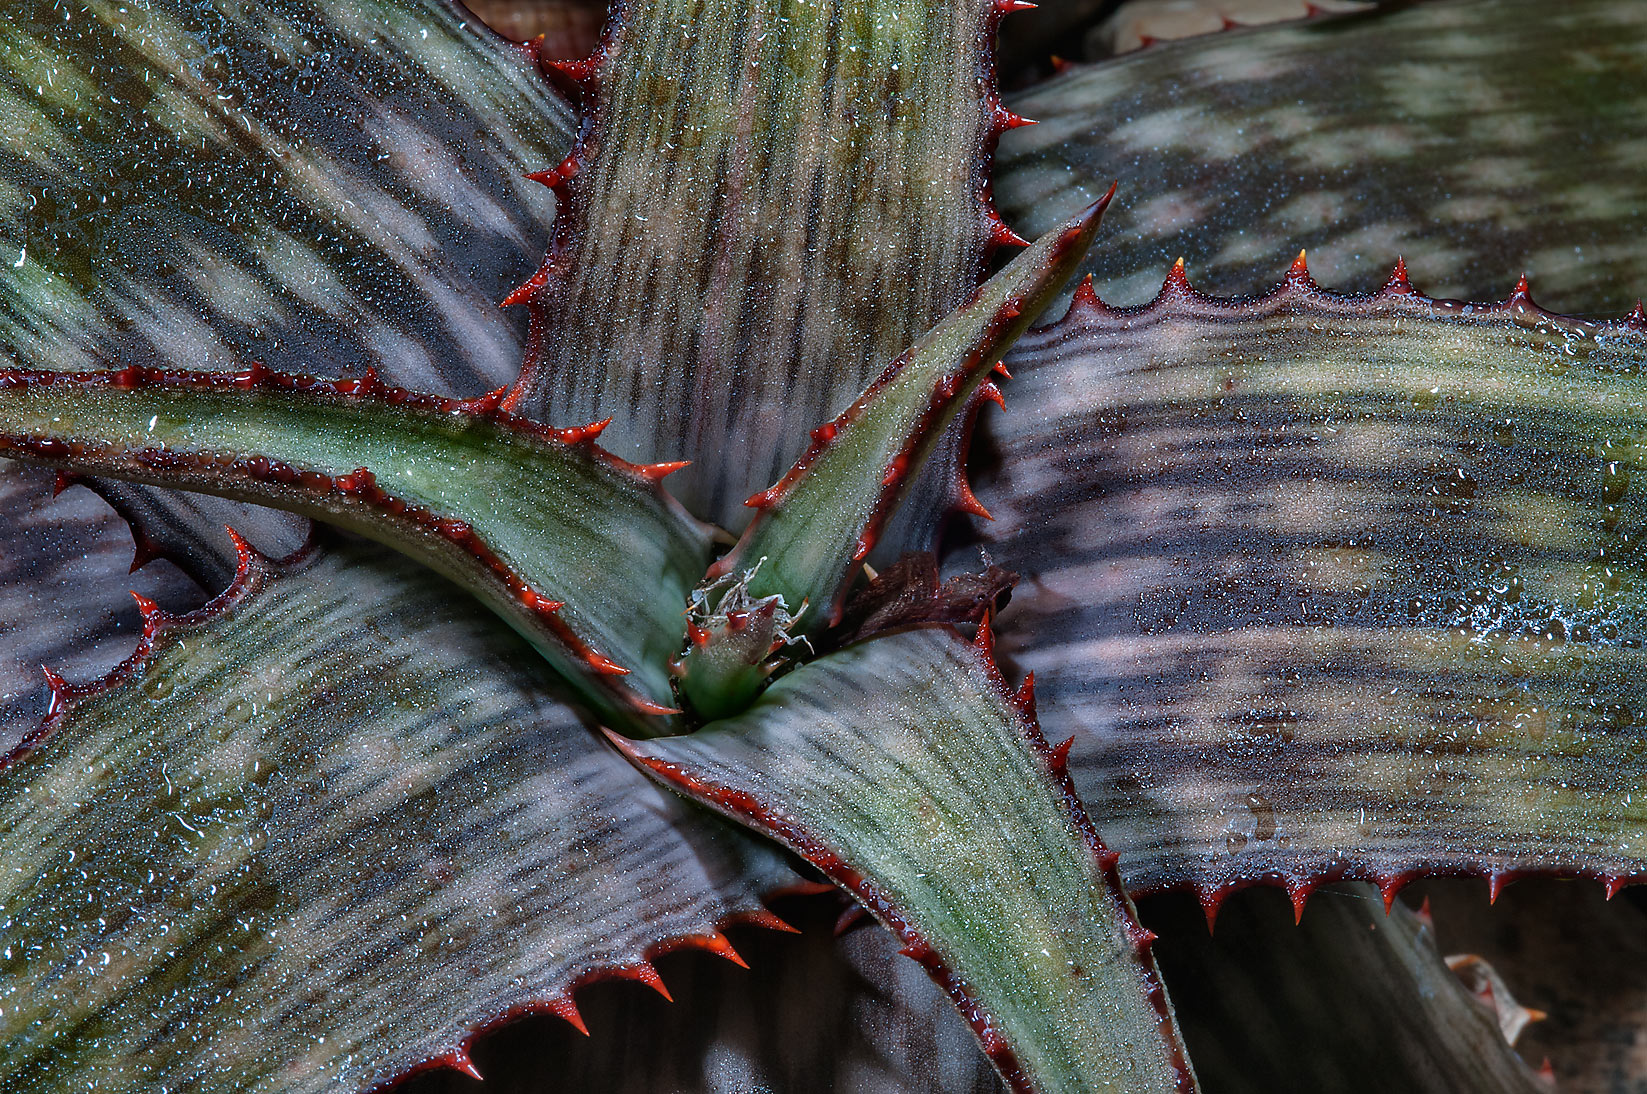 Aloe harlana in Mercer Arboretum and Botanical Gardens. Humble (Houston area), Texas